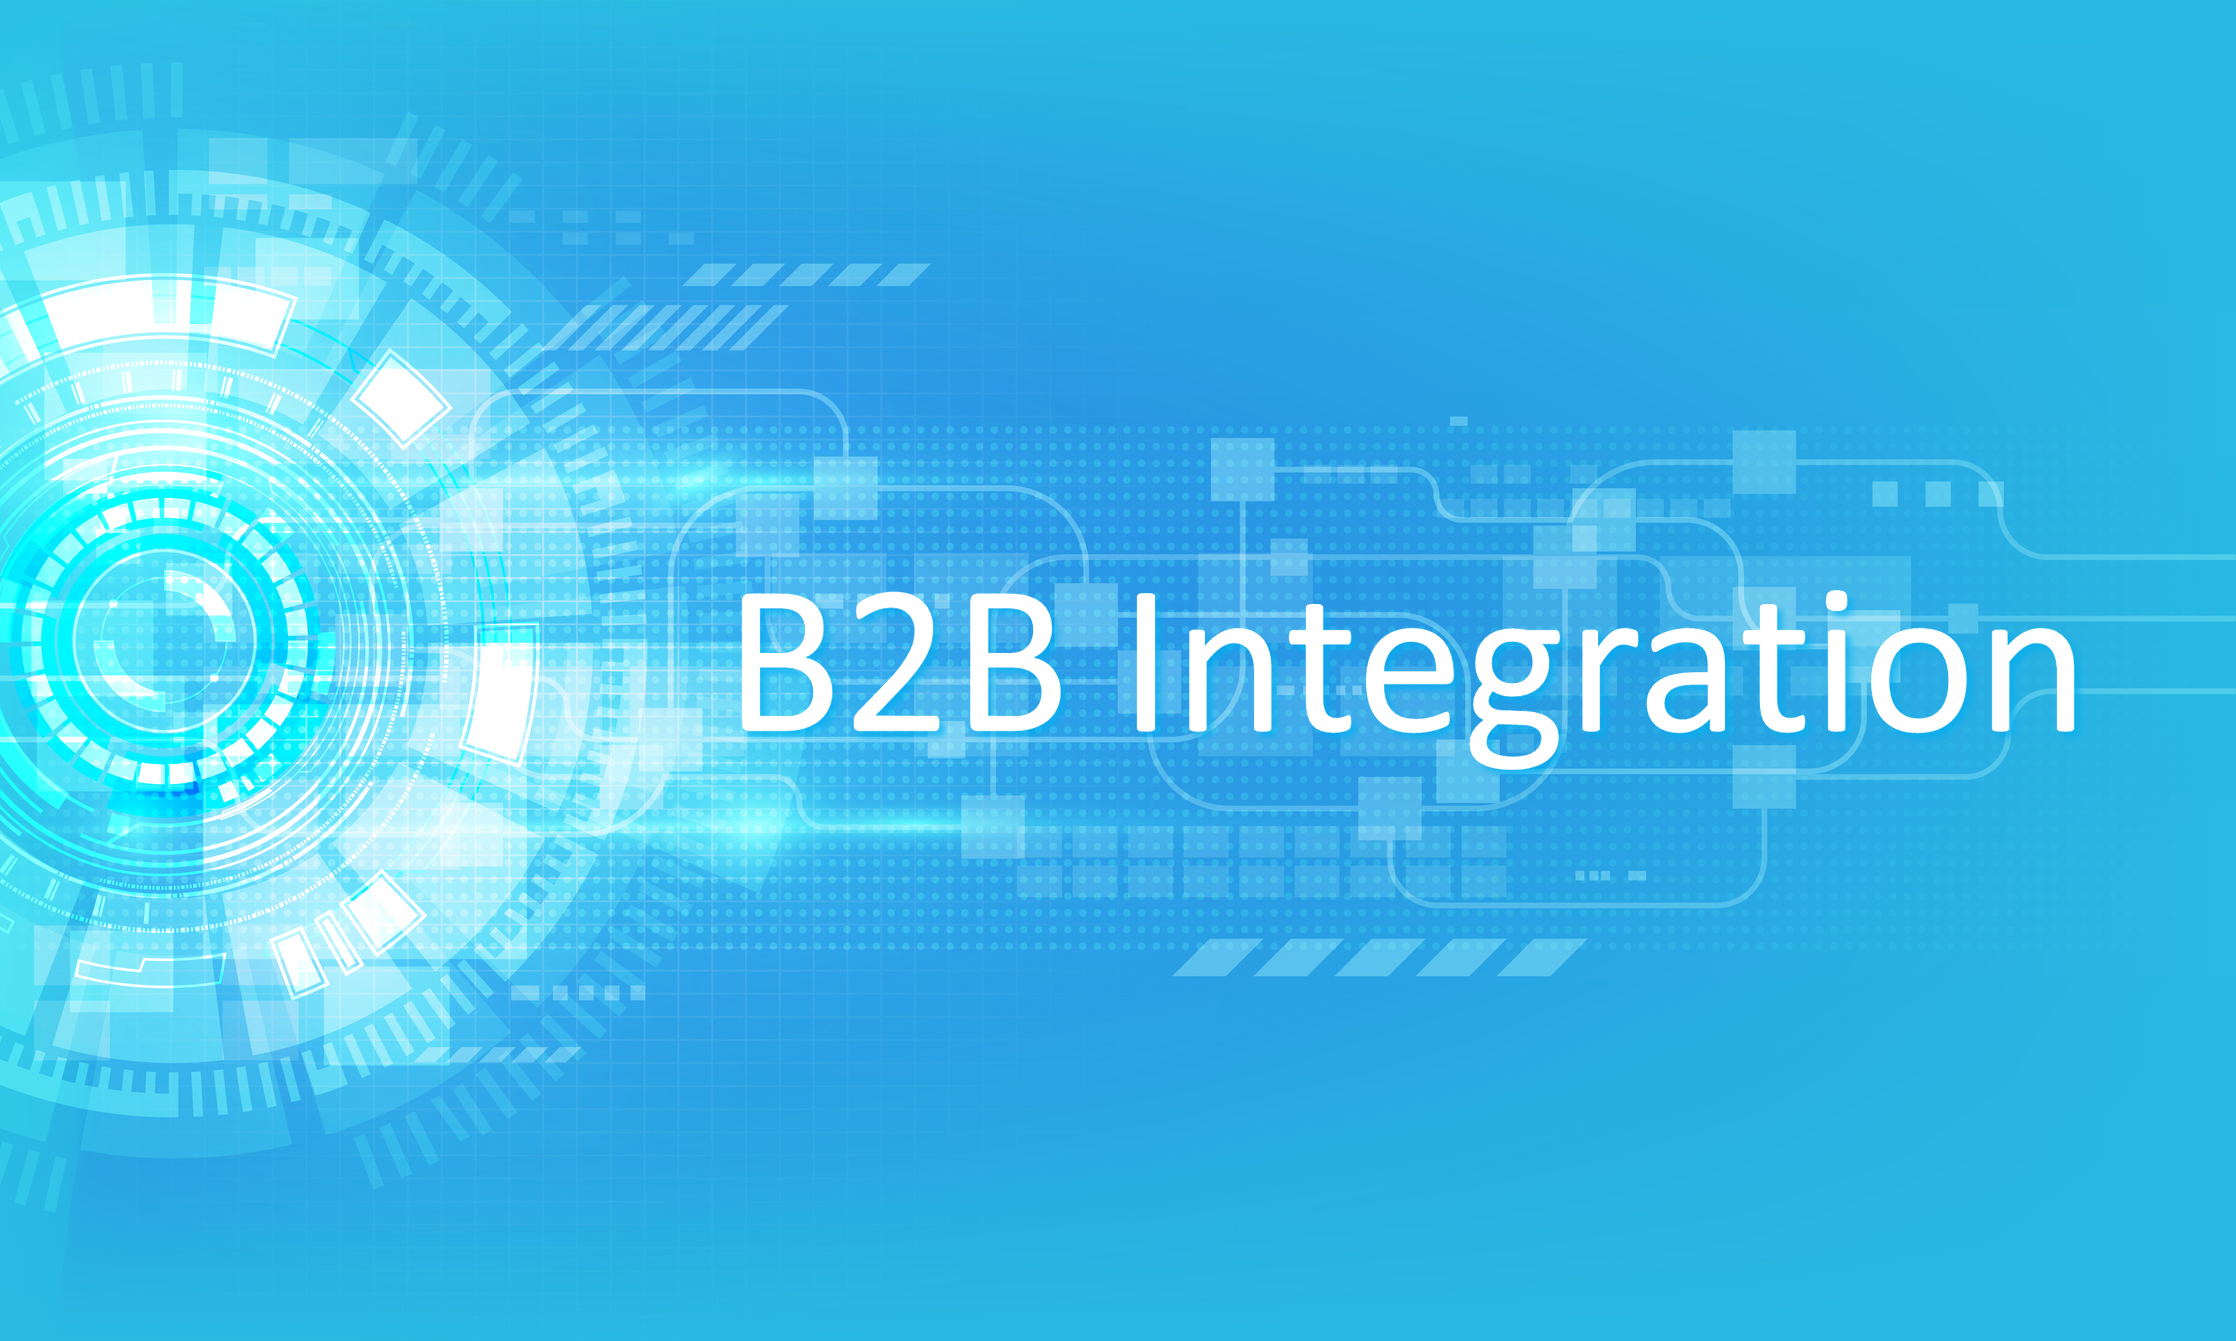 Business-to-business (B2B) integration technologies are increasingly in demand